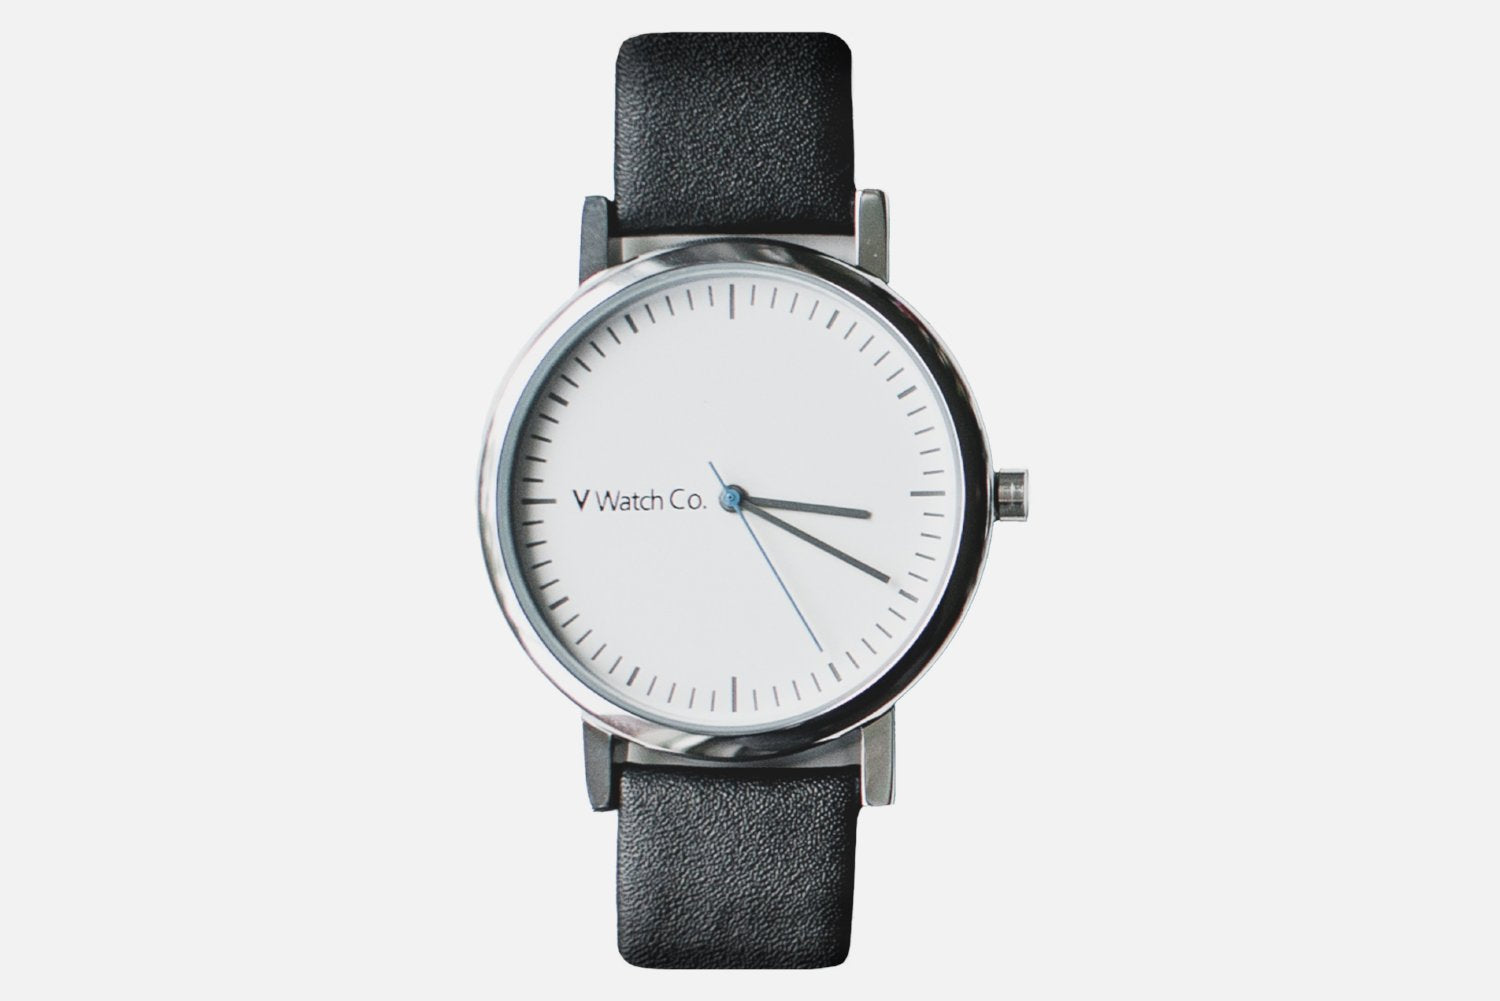 V WATCH CO. / White dial